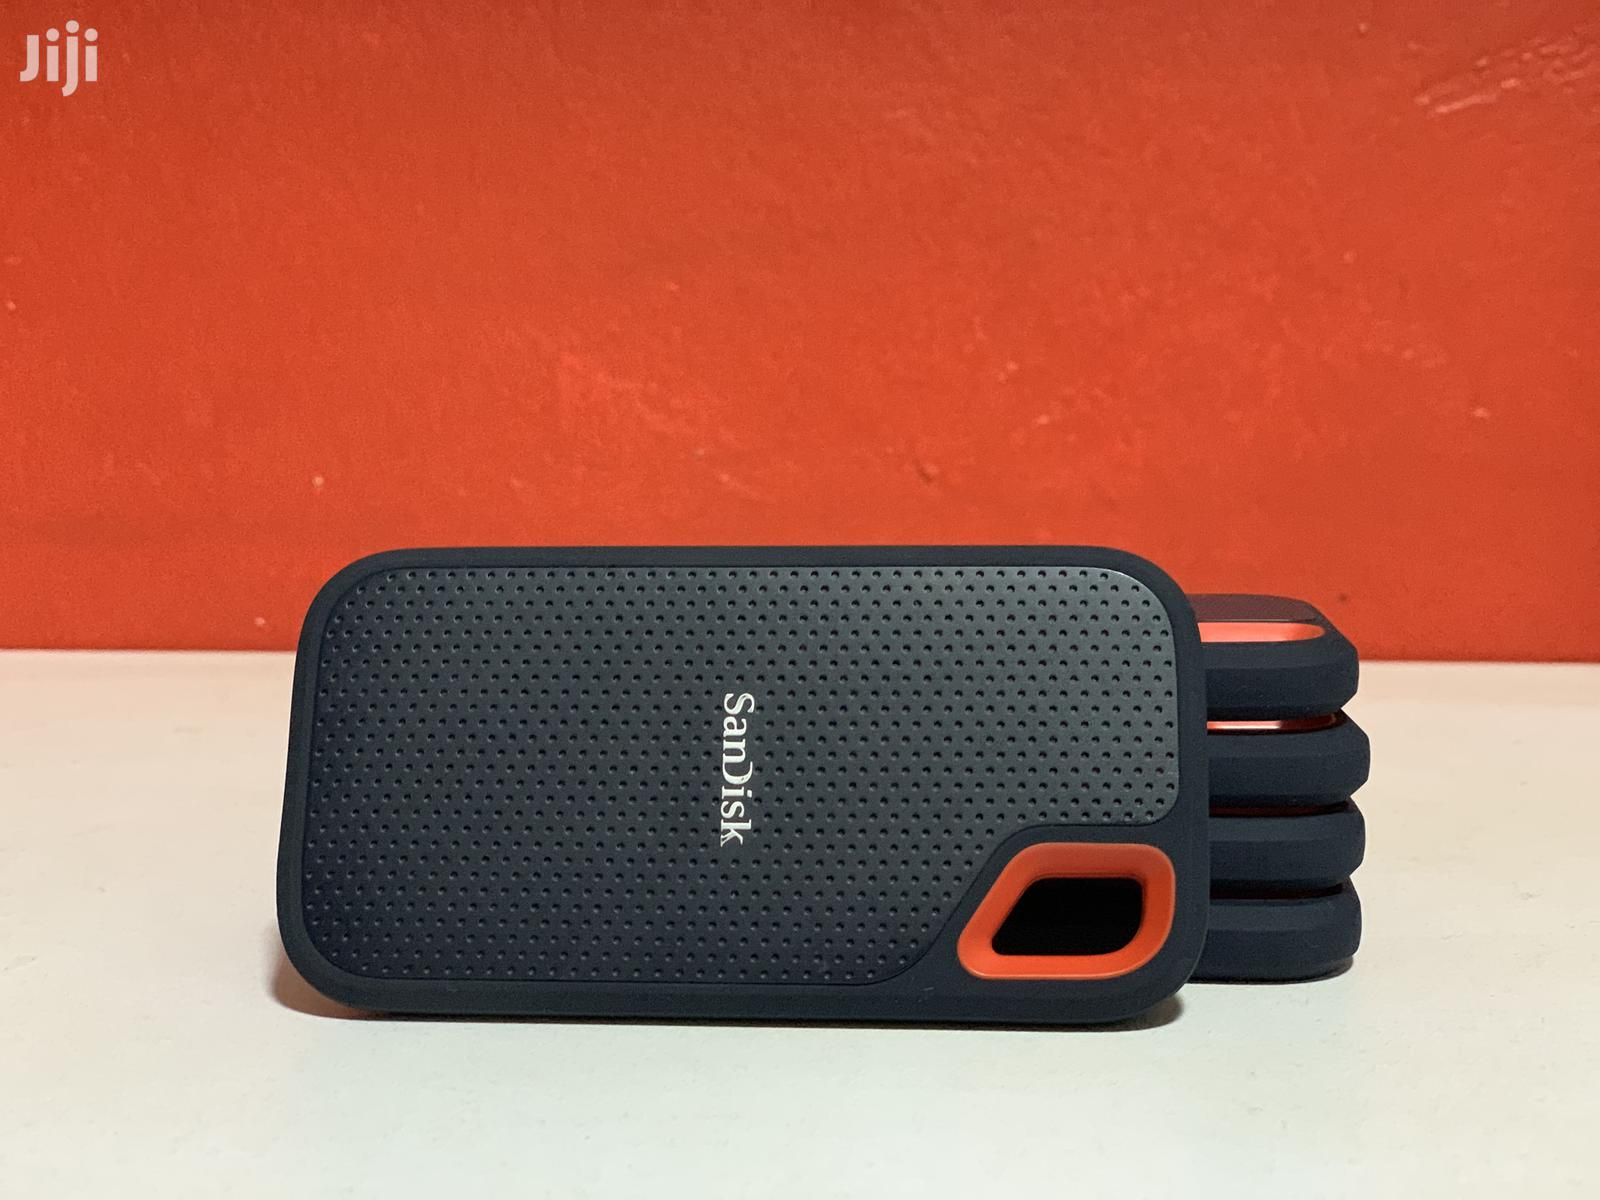 Sandisk Extreme Portable 1tb External Ssd